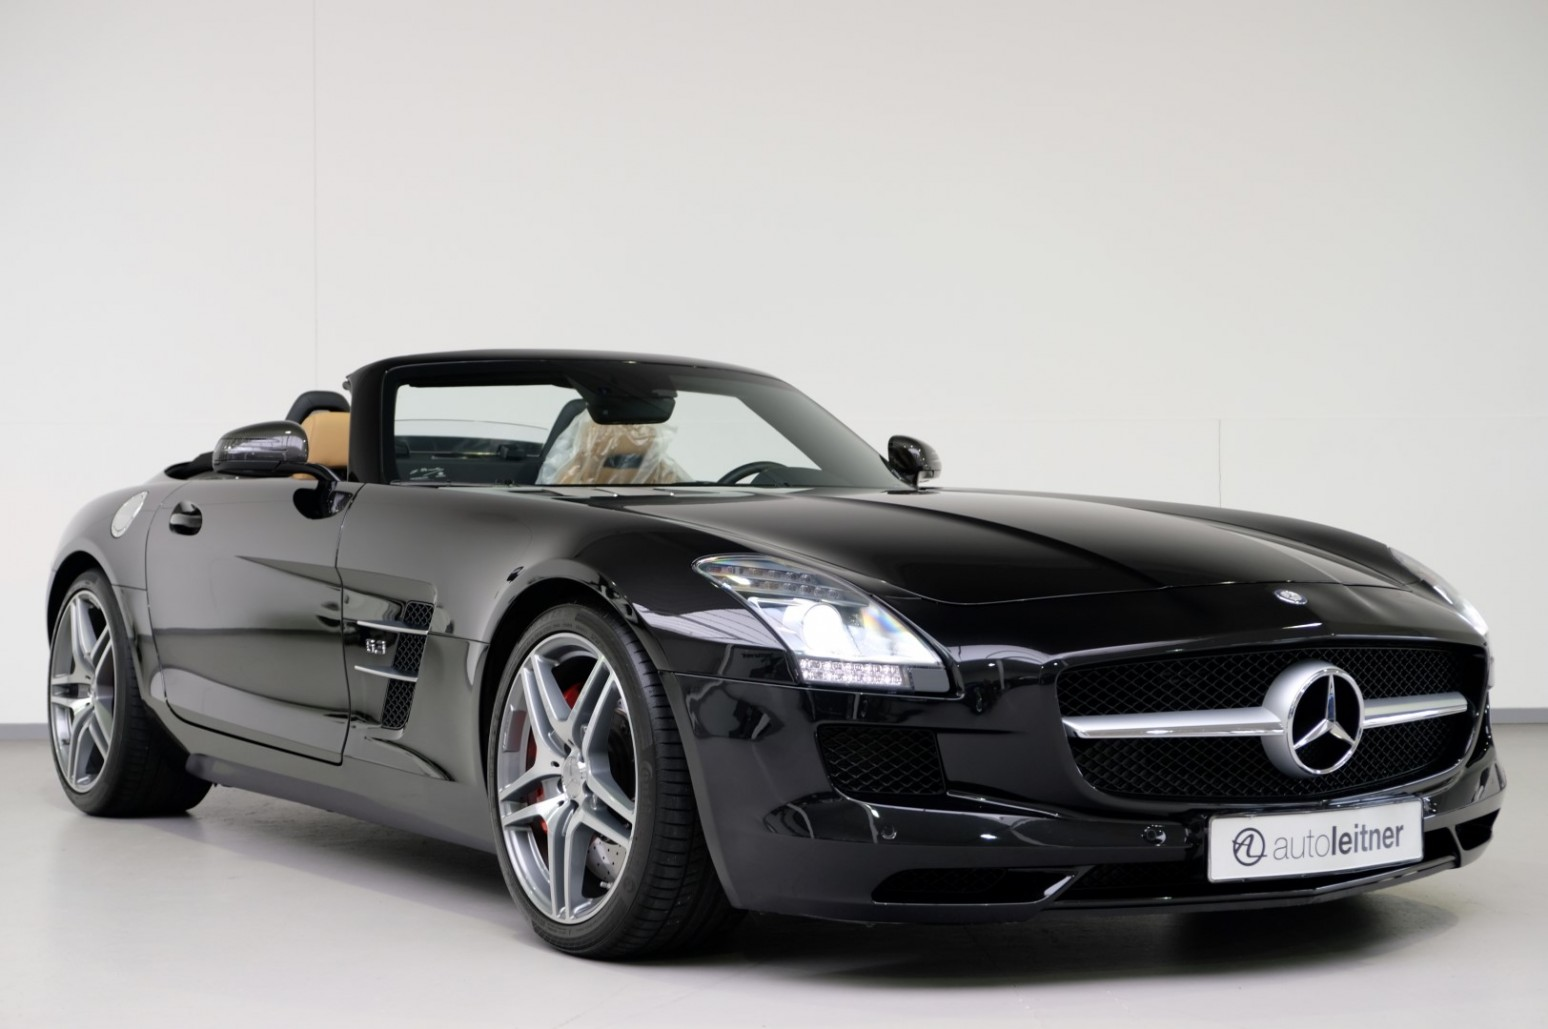 2012 mercedes sls 6 3 amg roadster obsidianzwart metallic. Black Bedroom Furniture Sets. Home Design Ideas